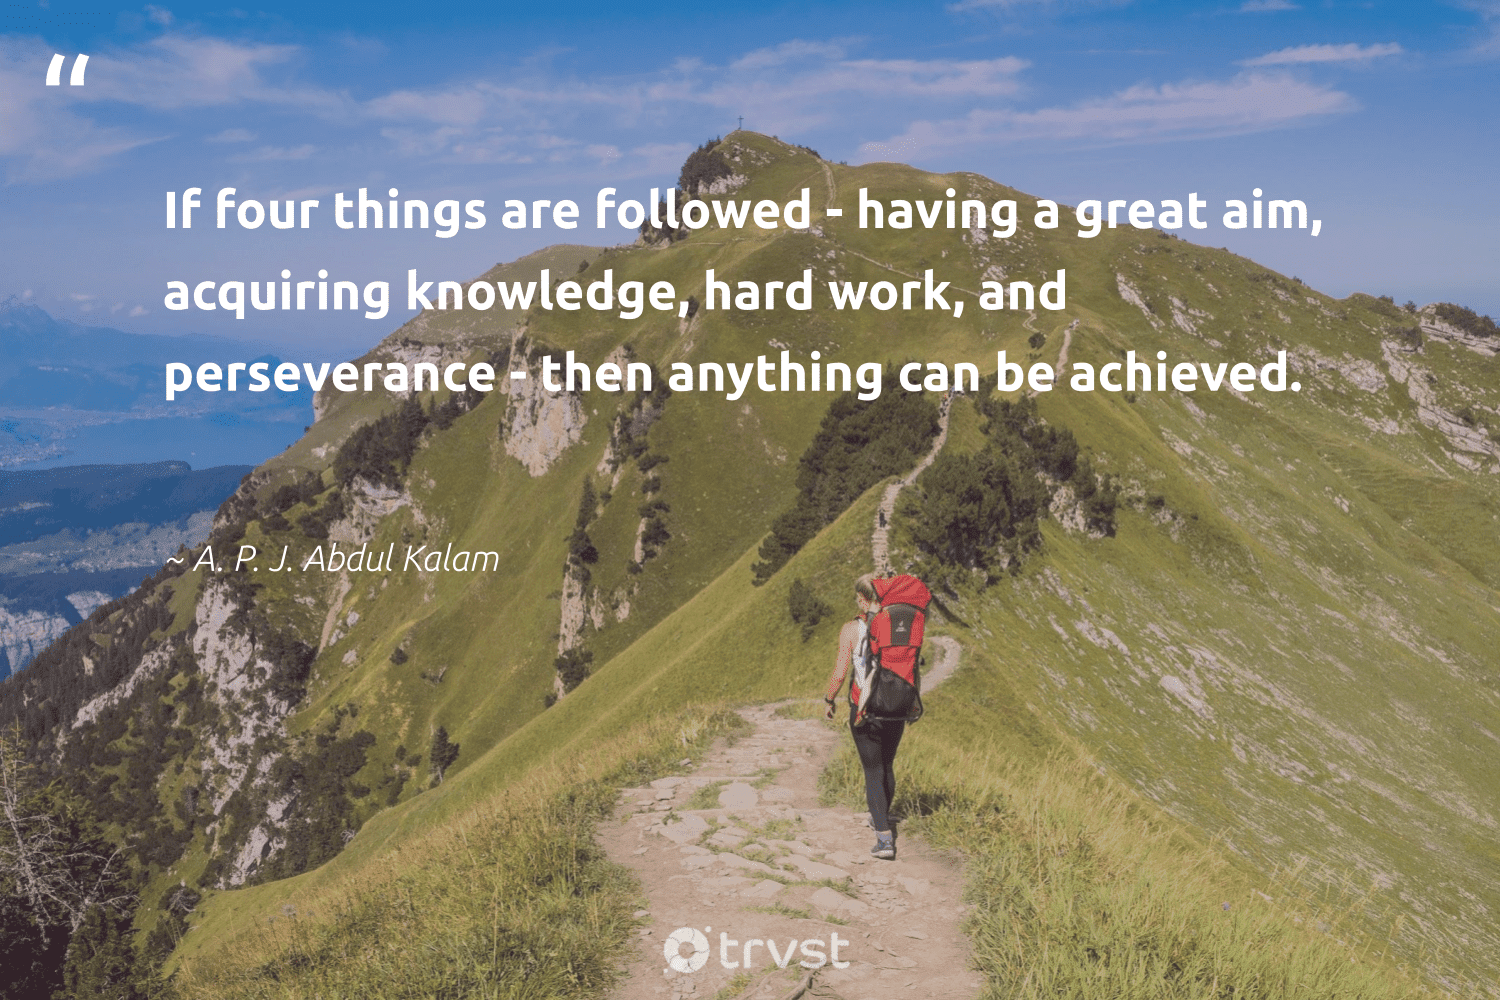 """""""If four things are followed - having a great aim, acquiring knowledge, hard work, and perseverance - then anything can be achieved.""""  - A. P. J. Abdul Kalam #trvst #quotes #begreat #gogreen #nevergiveup #dosomething #futureofwork #dotherightthing #softskills #ecoconscious #planetearthfirst #impact"""